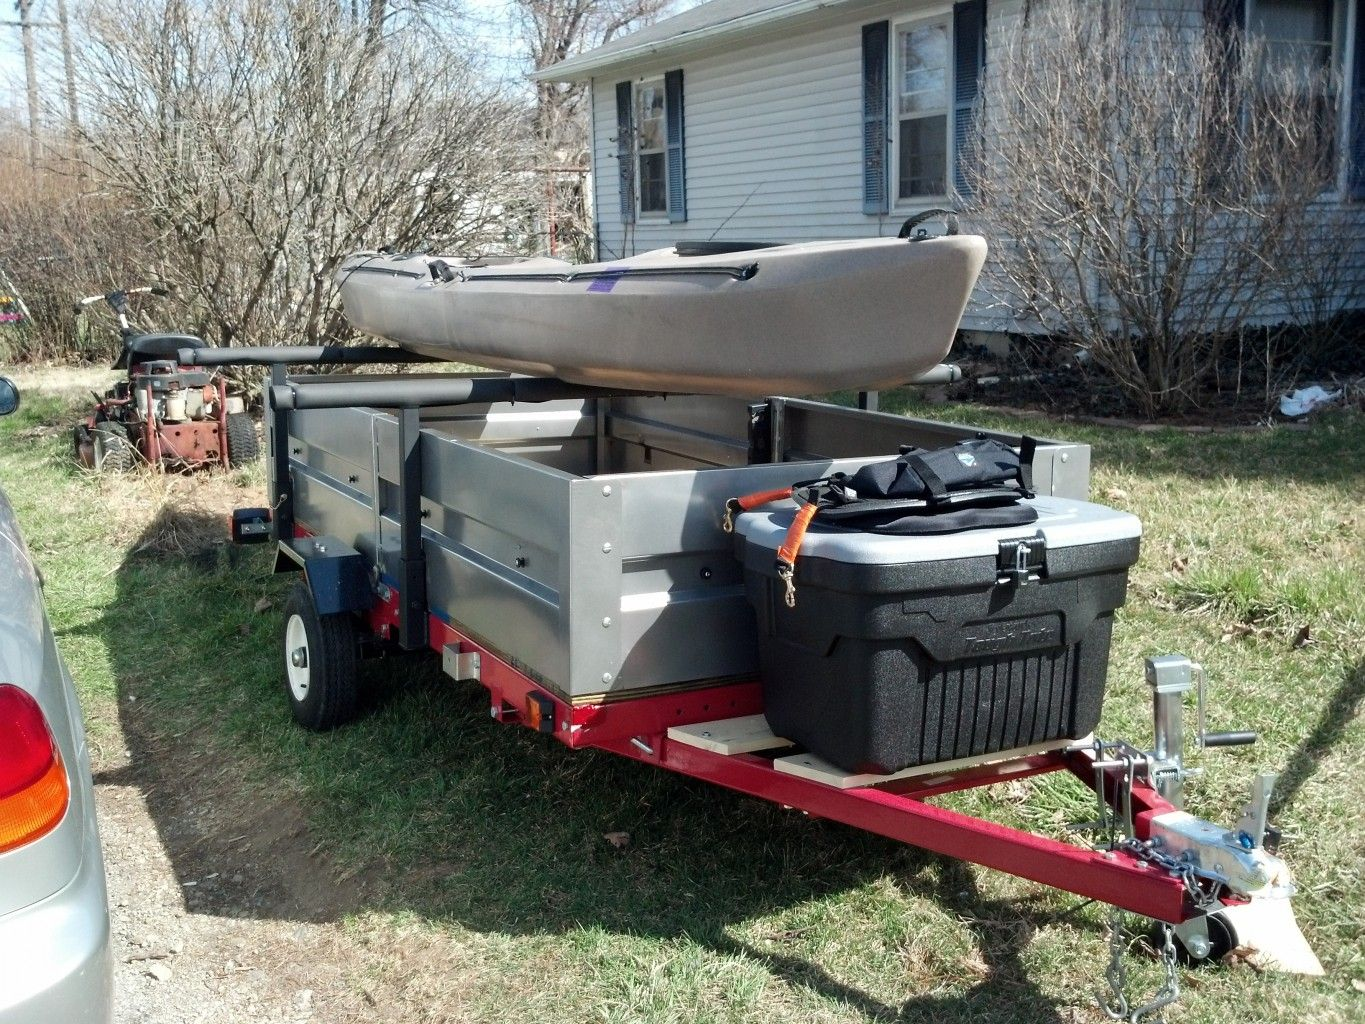 Hacking A Harbor Freight Trailer Kit Kayak Edition Kayak